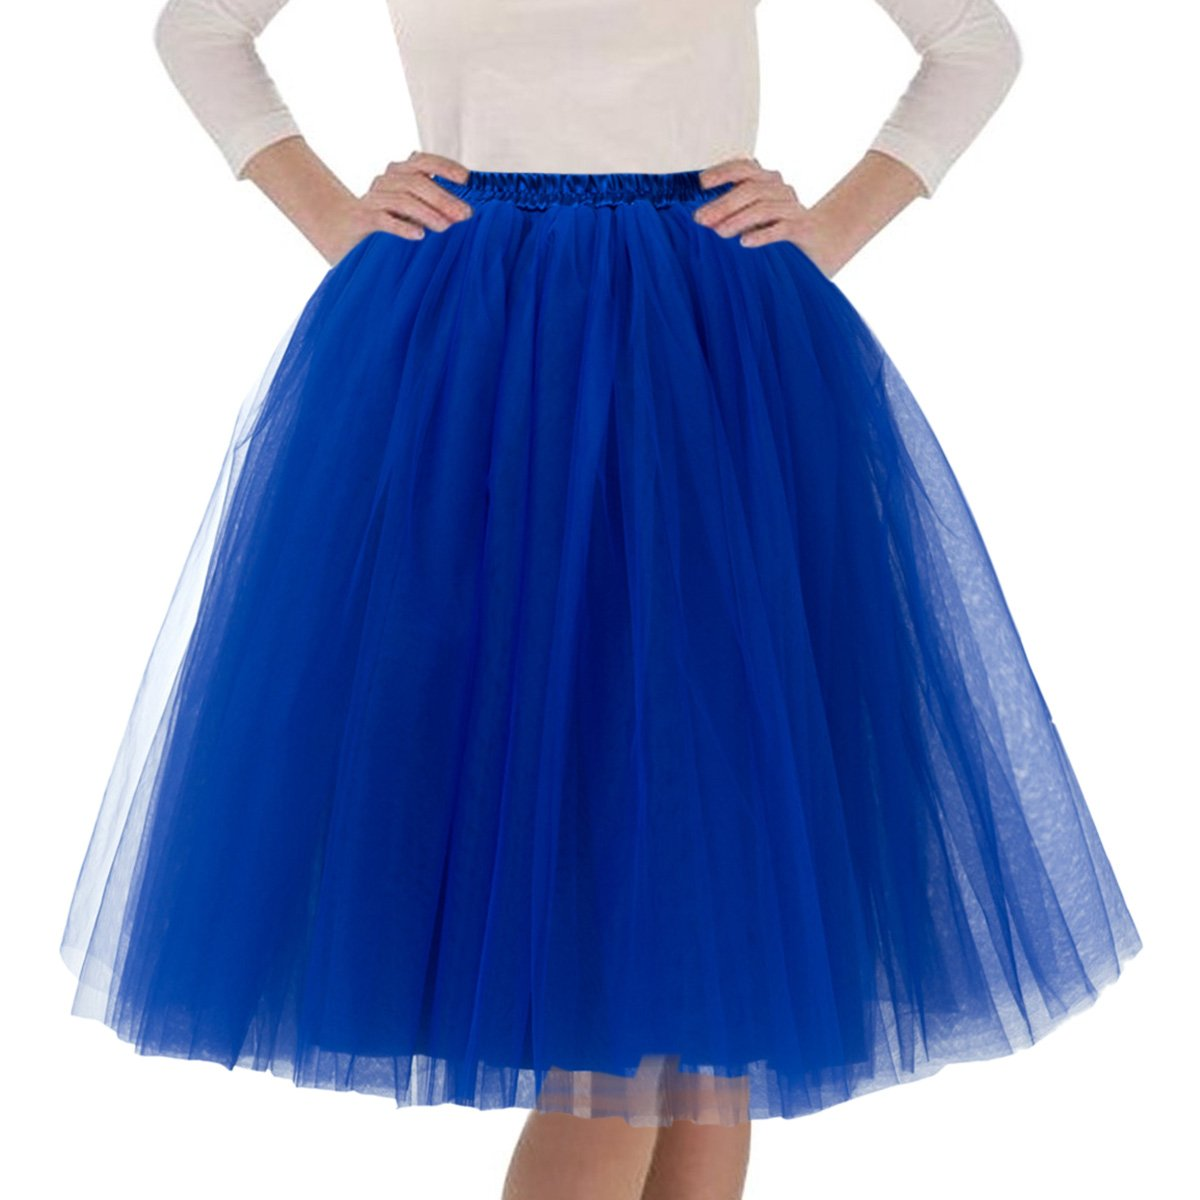 Quesera Women's Layered Tutu A Line Knee Length Elastic Waistband Puffy Tulle Skirt,Royal Blue,Free Size fit in 2-12